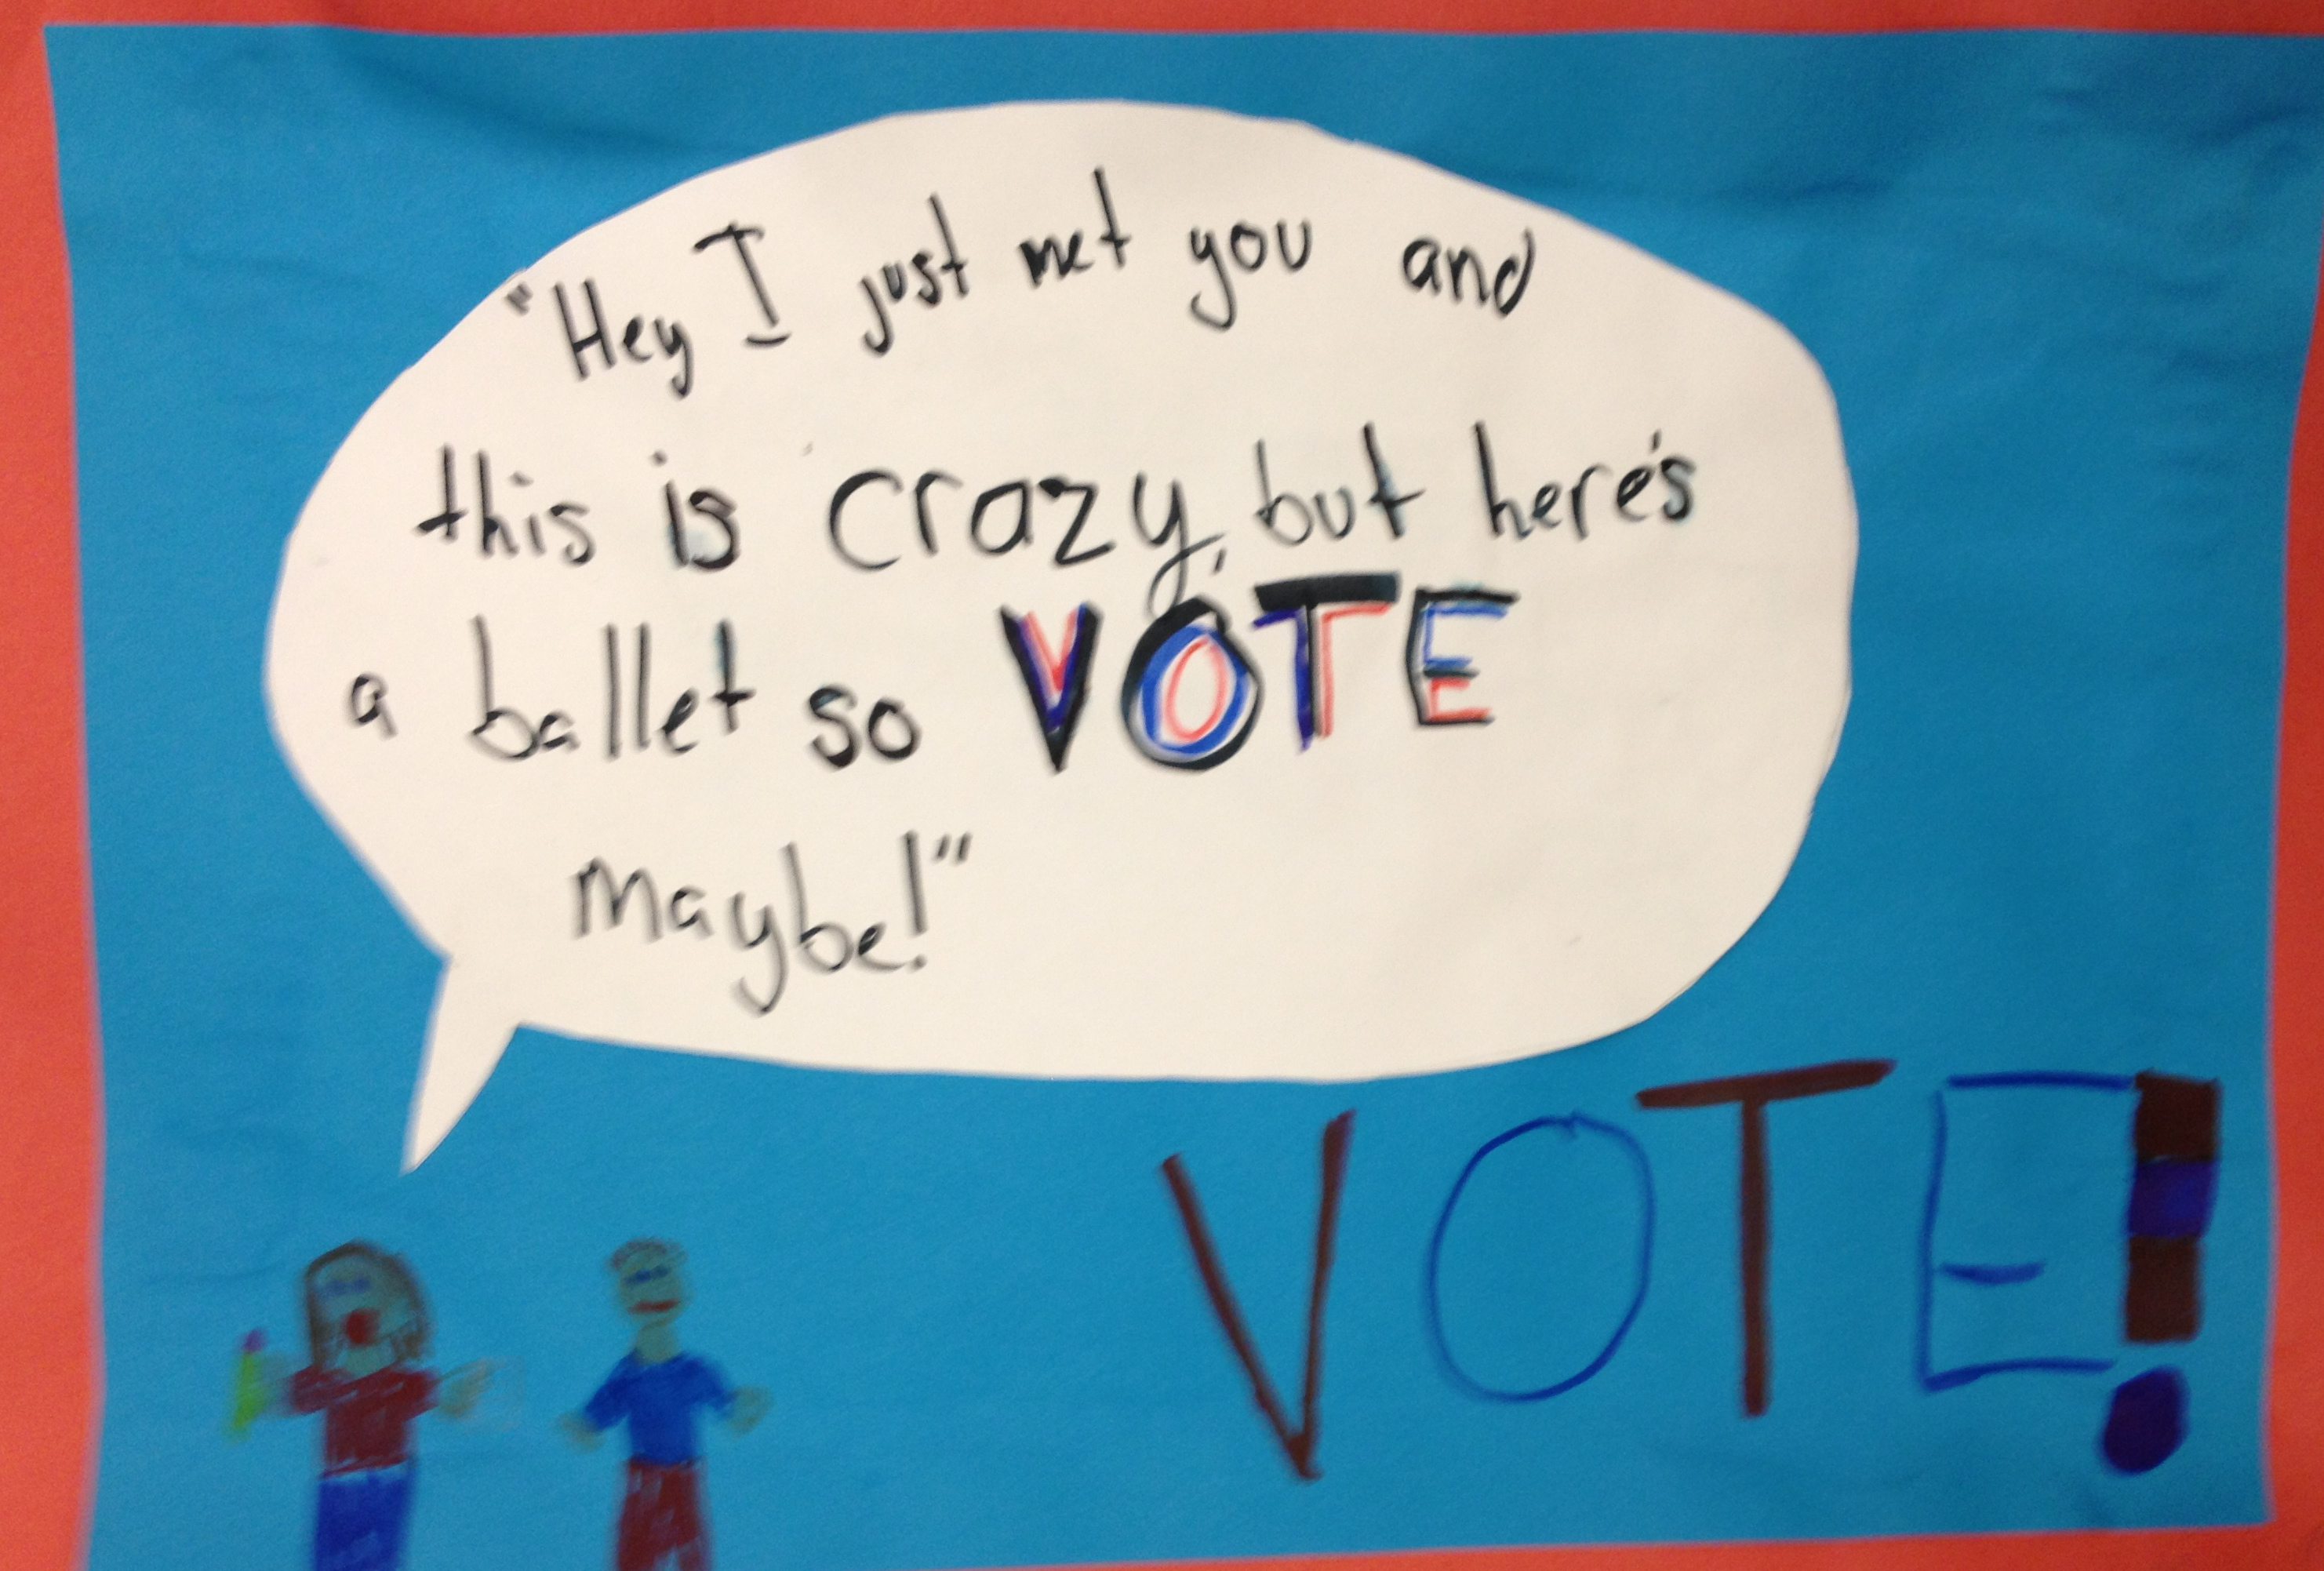 Funny Student Council Campaign Poster Ideas   www.galleryhip.com - The ...